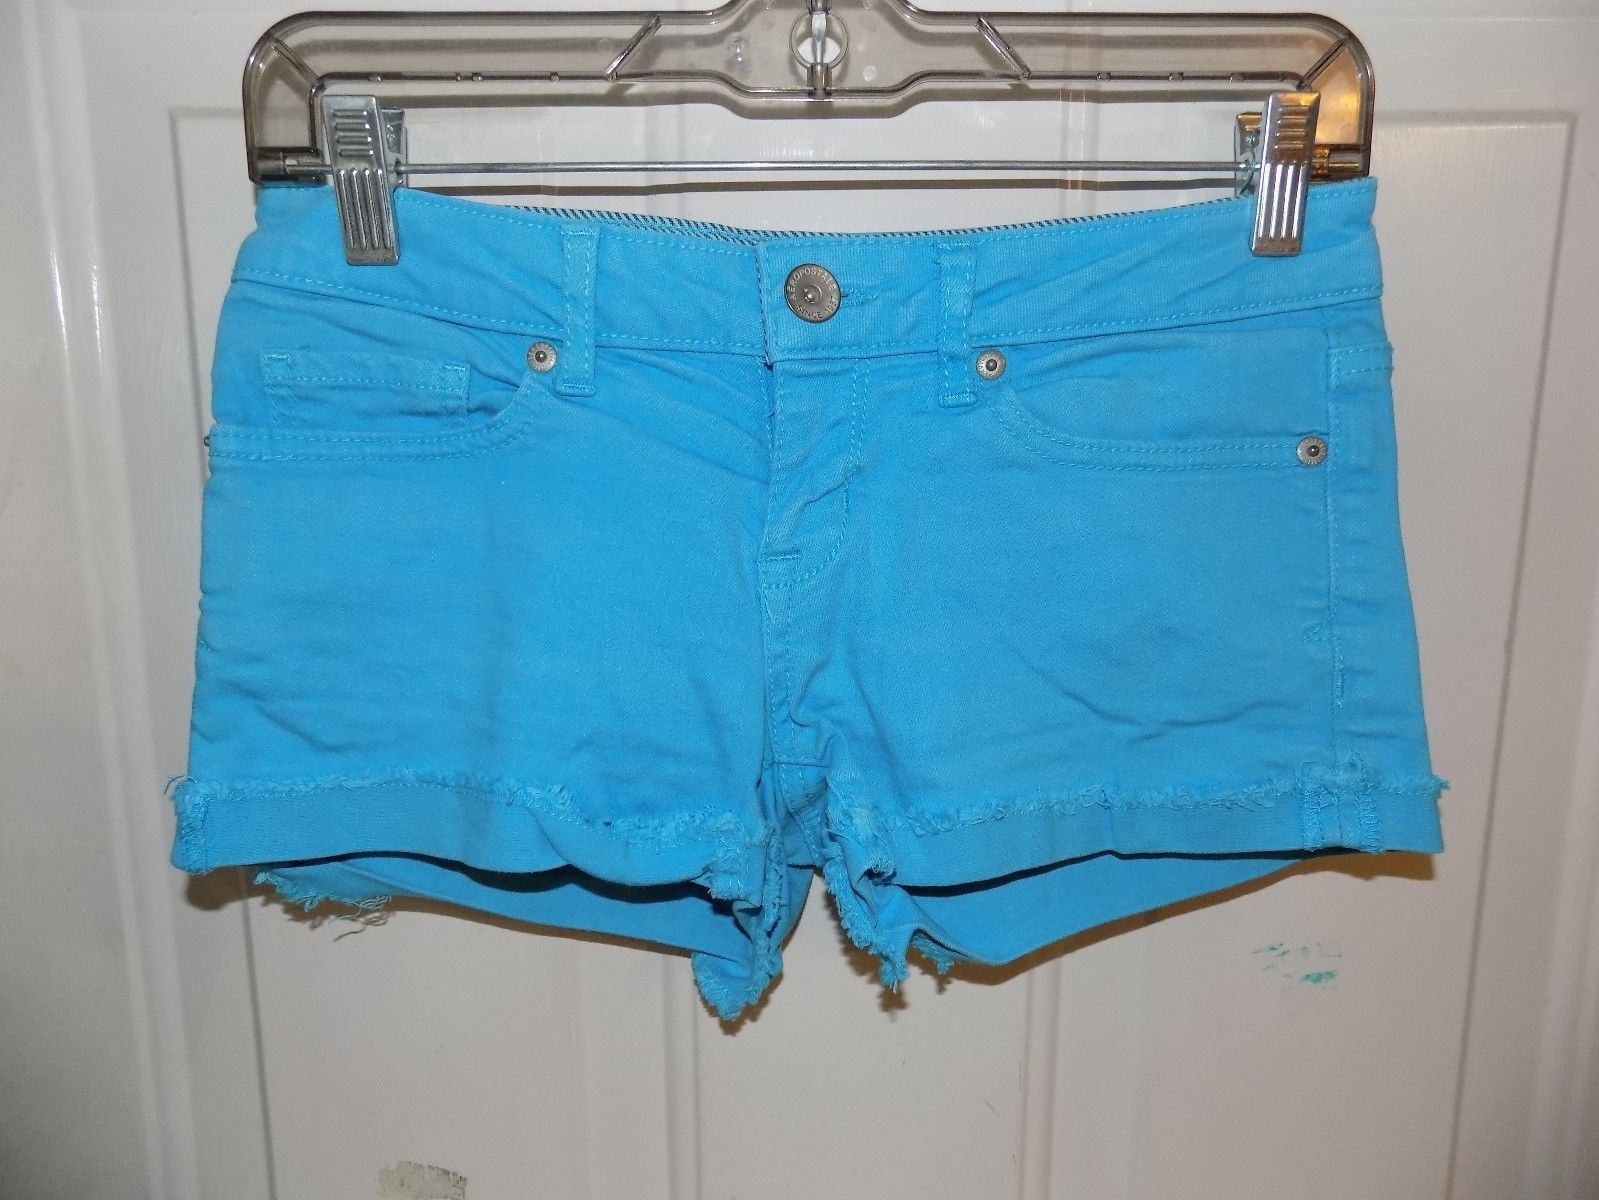 Primary image for AEROPOSTALE BLUE SHORTS SIZE 1/2 WOMEN'S EUC